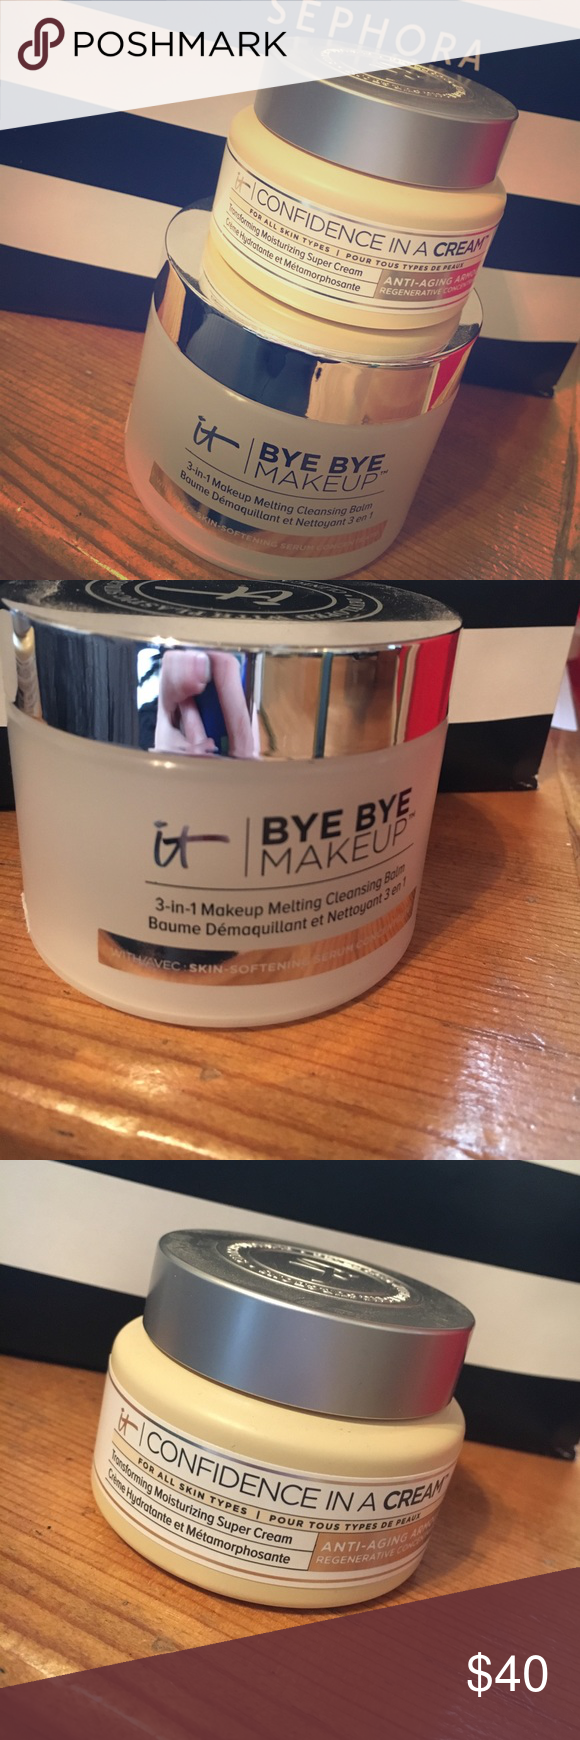 Confidence in a cream and byebye make up Confidence in